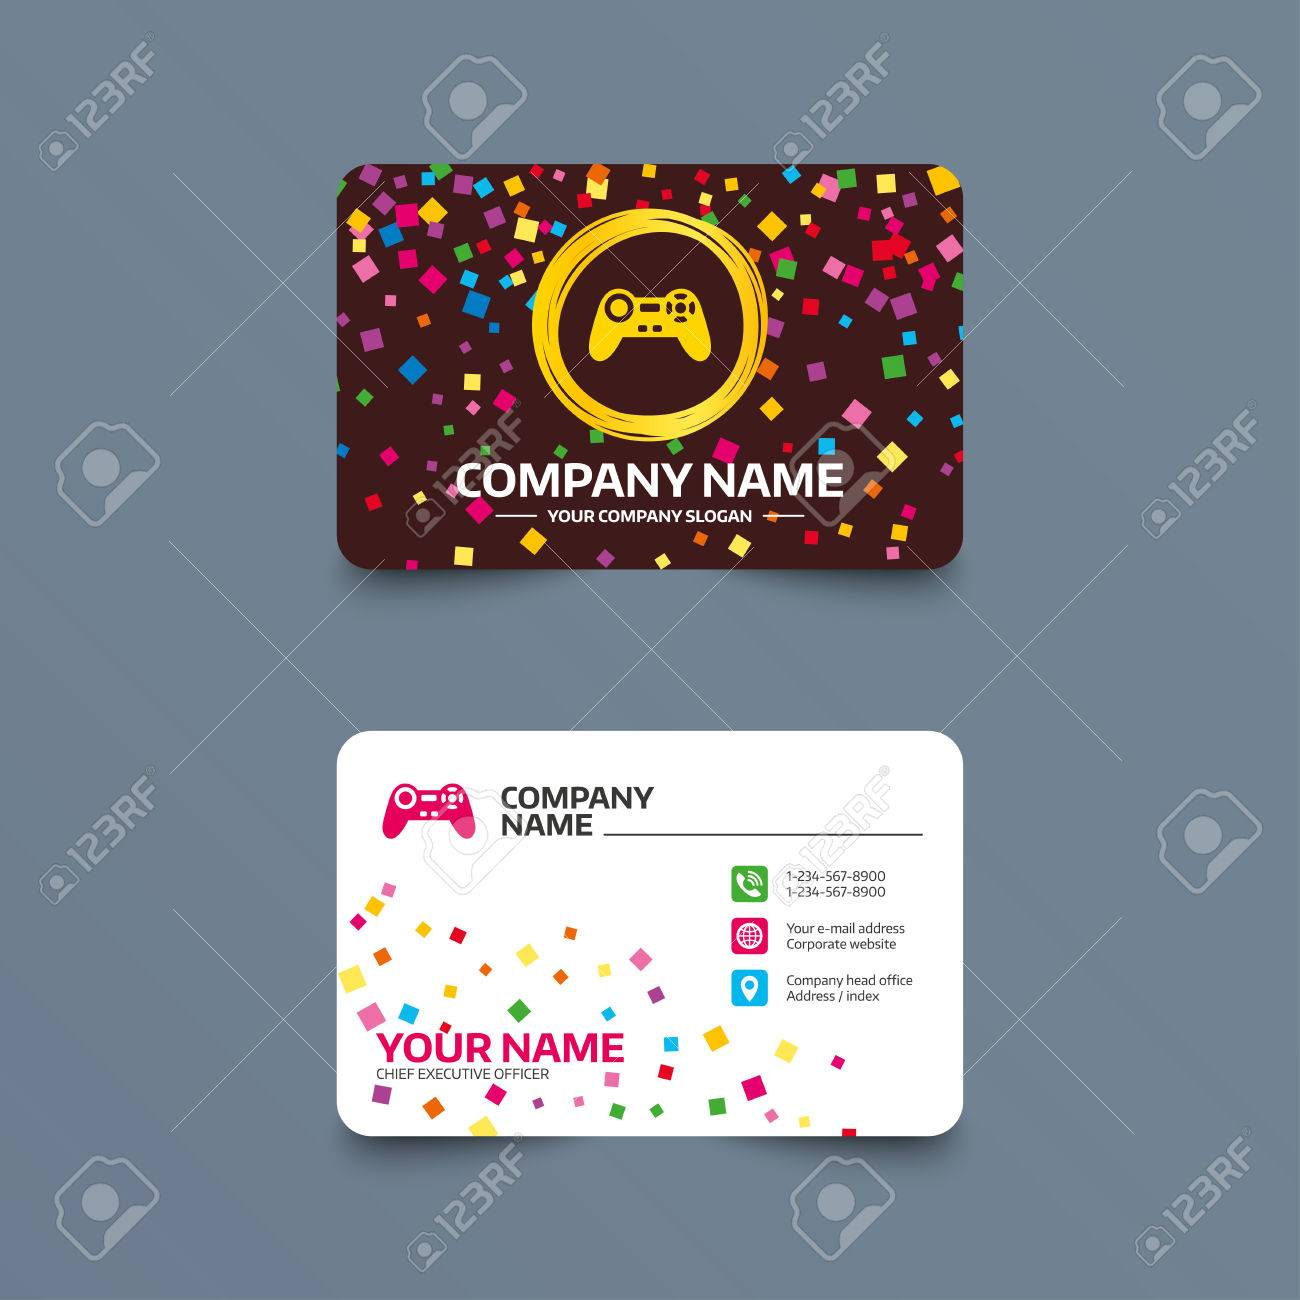 business card template with confetti pieces joystick sign icon